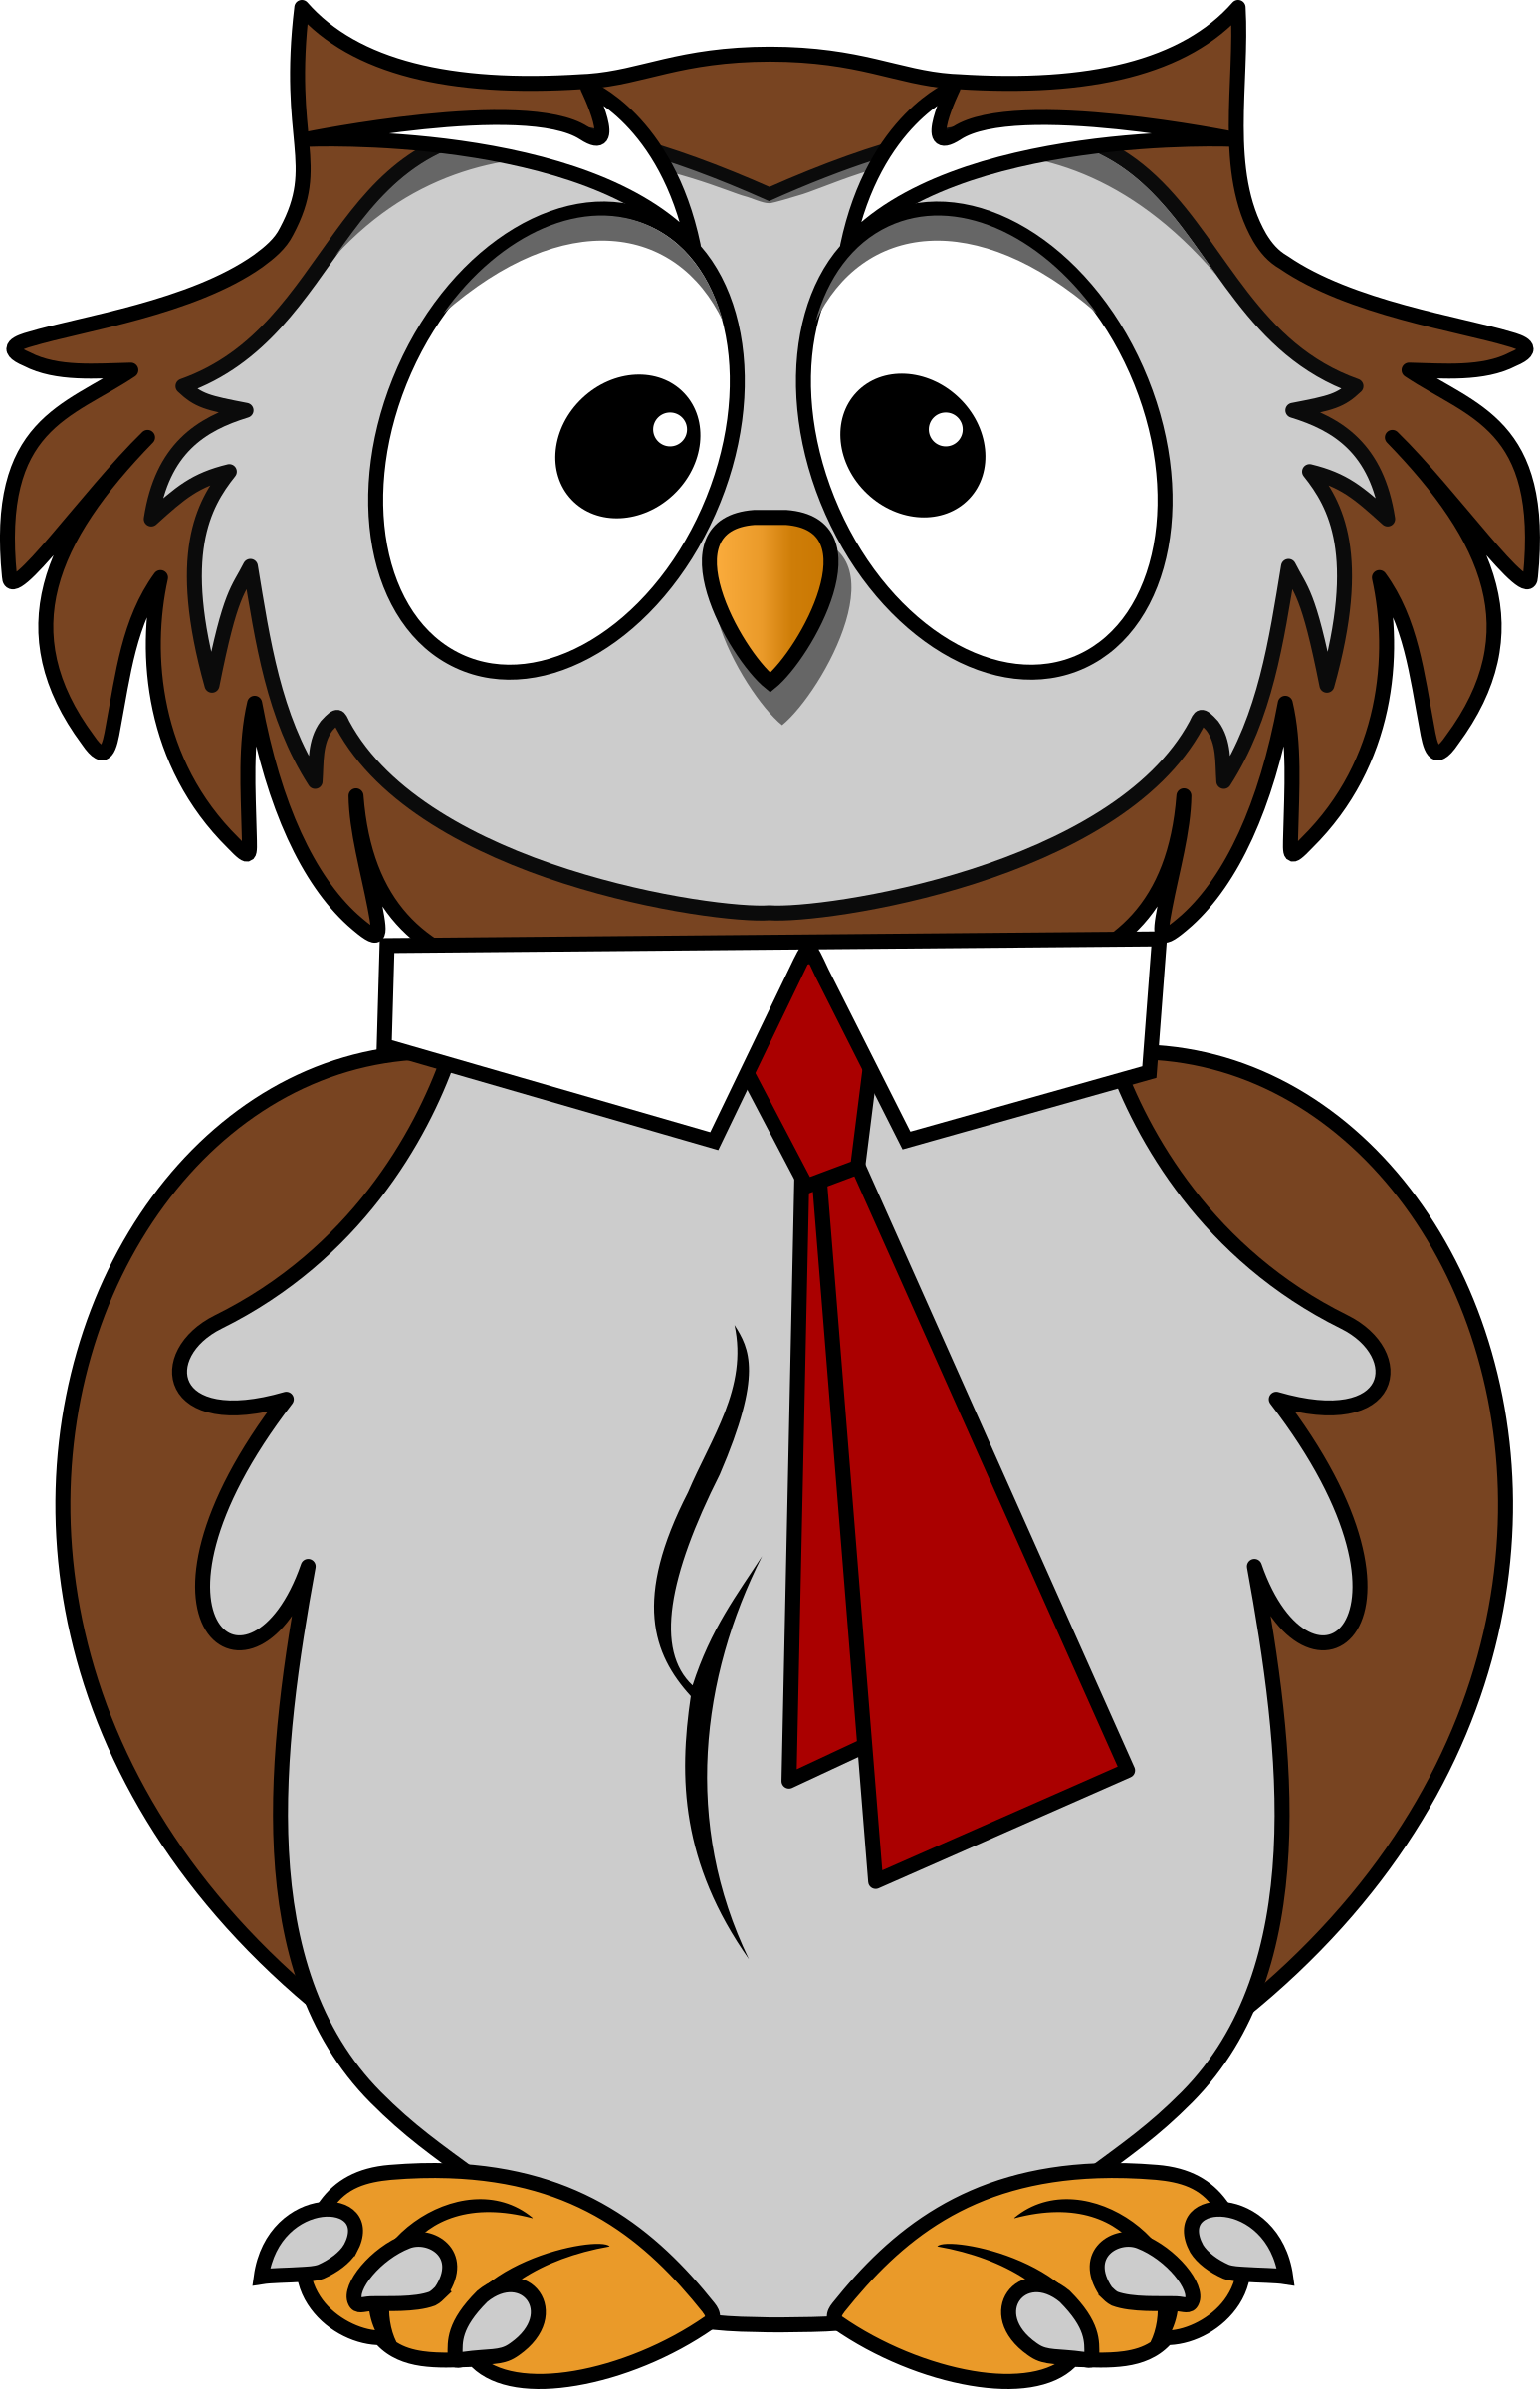 Cartoon Owl Clipart at GetDrawings | Free download